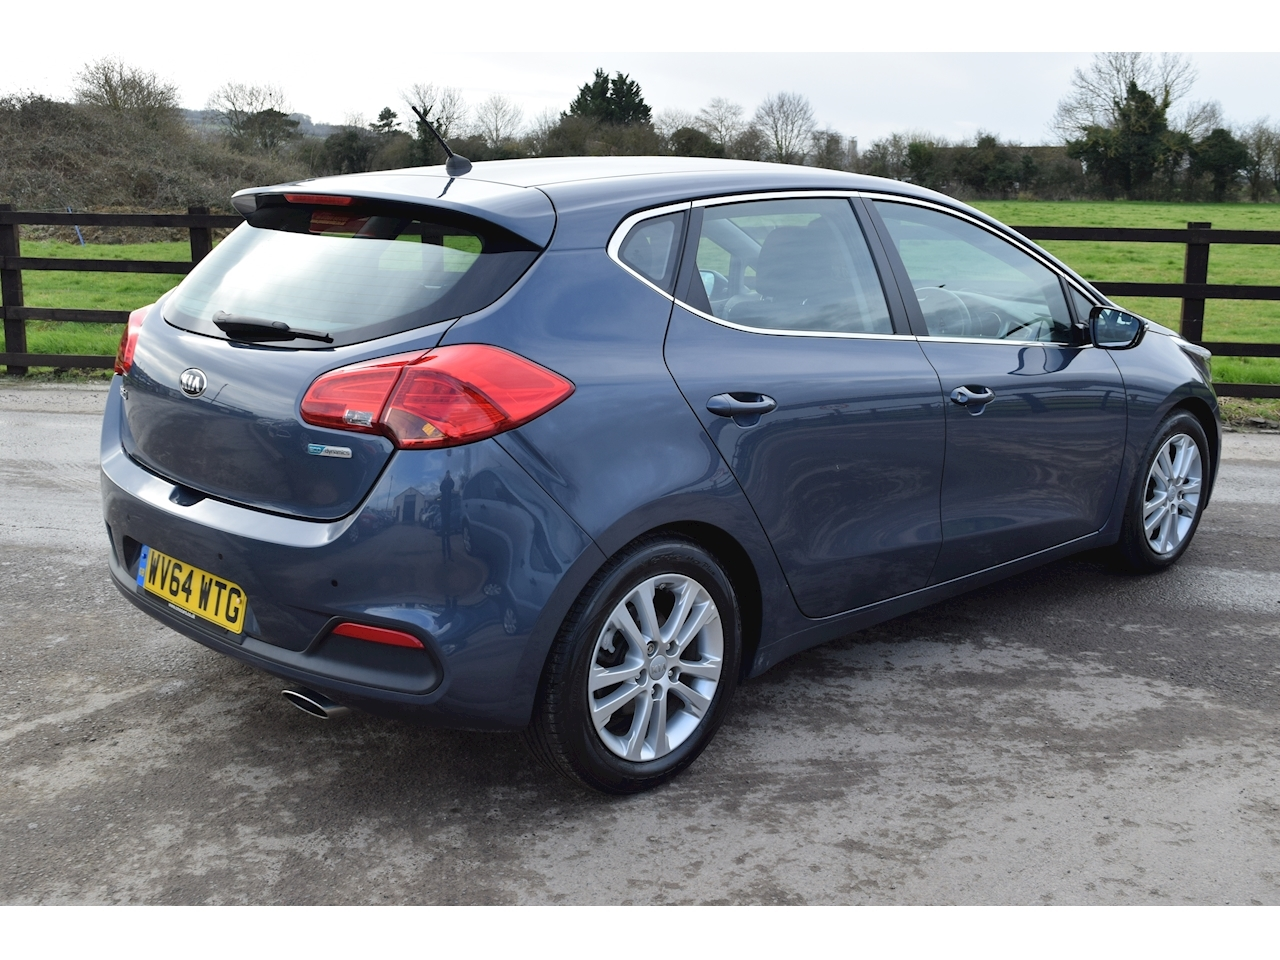 Kia Ceed Crdi 2 Ecodynamics Hatchback 1.6 Manual Diesel